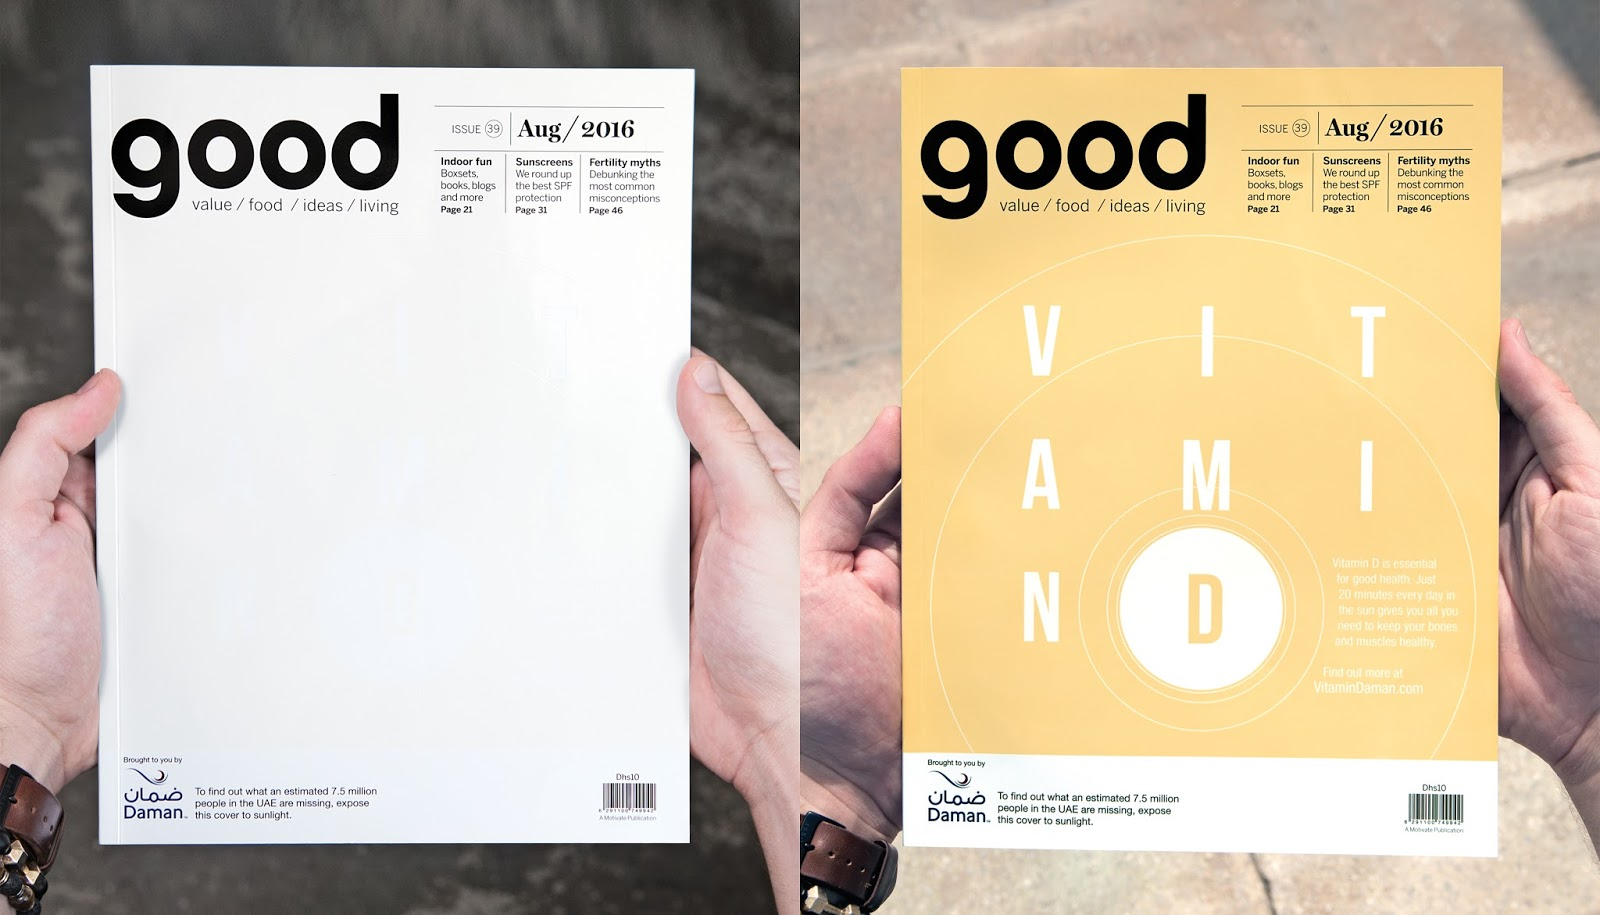 e4ce17aae Daman's AdD - A Print Ad that gave people in the UAE some much needed  Vitamin